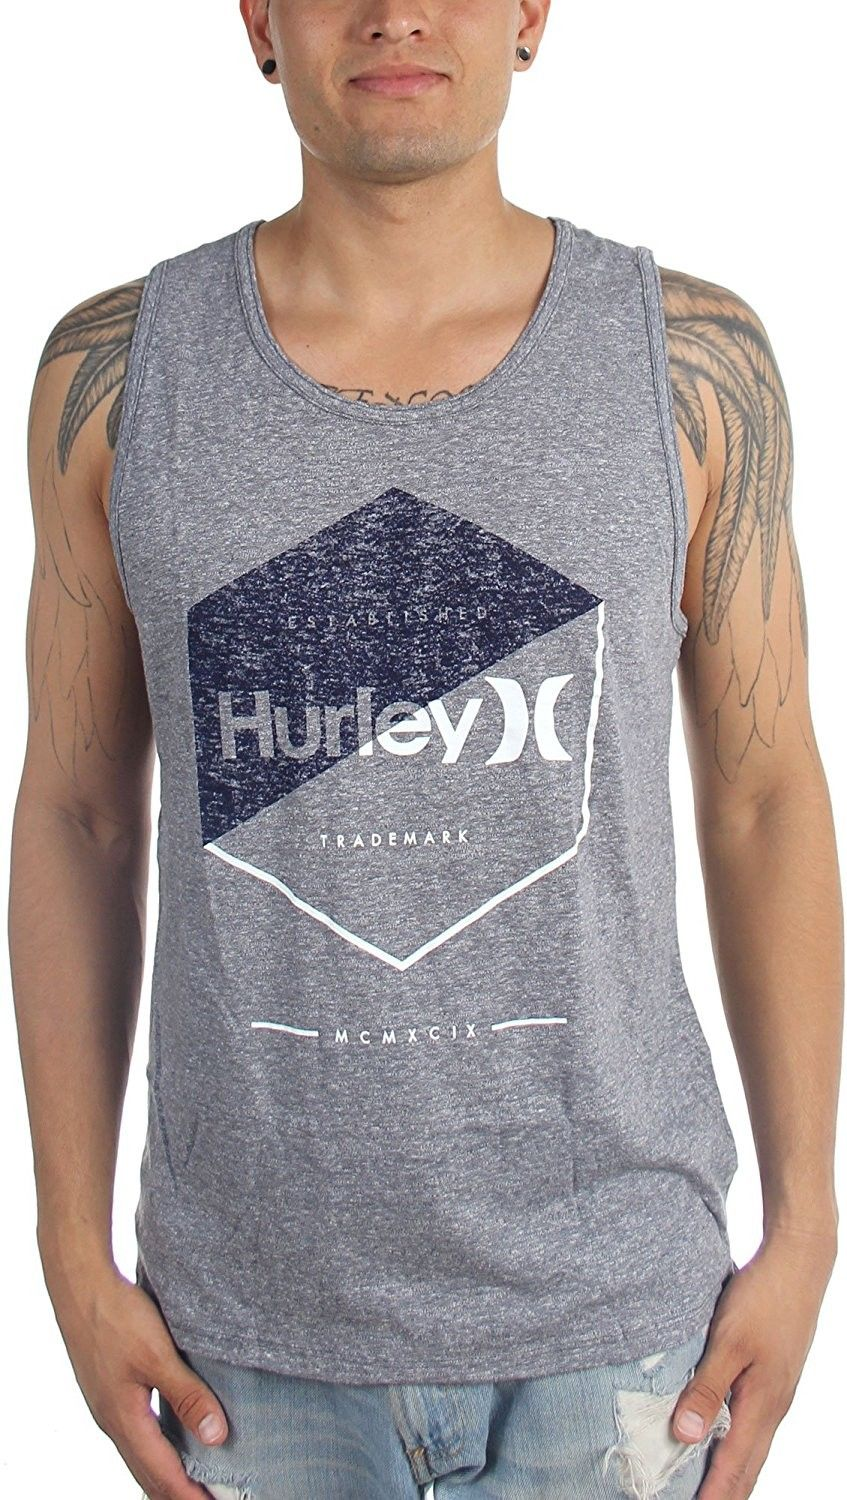 bf133d2cbc882 Men s One and Only Graphic Tank Top - Charcoal - CC12IVIXRA3 in 2018 ...